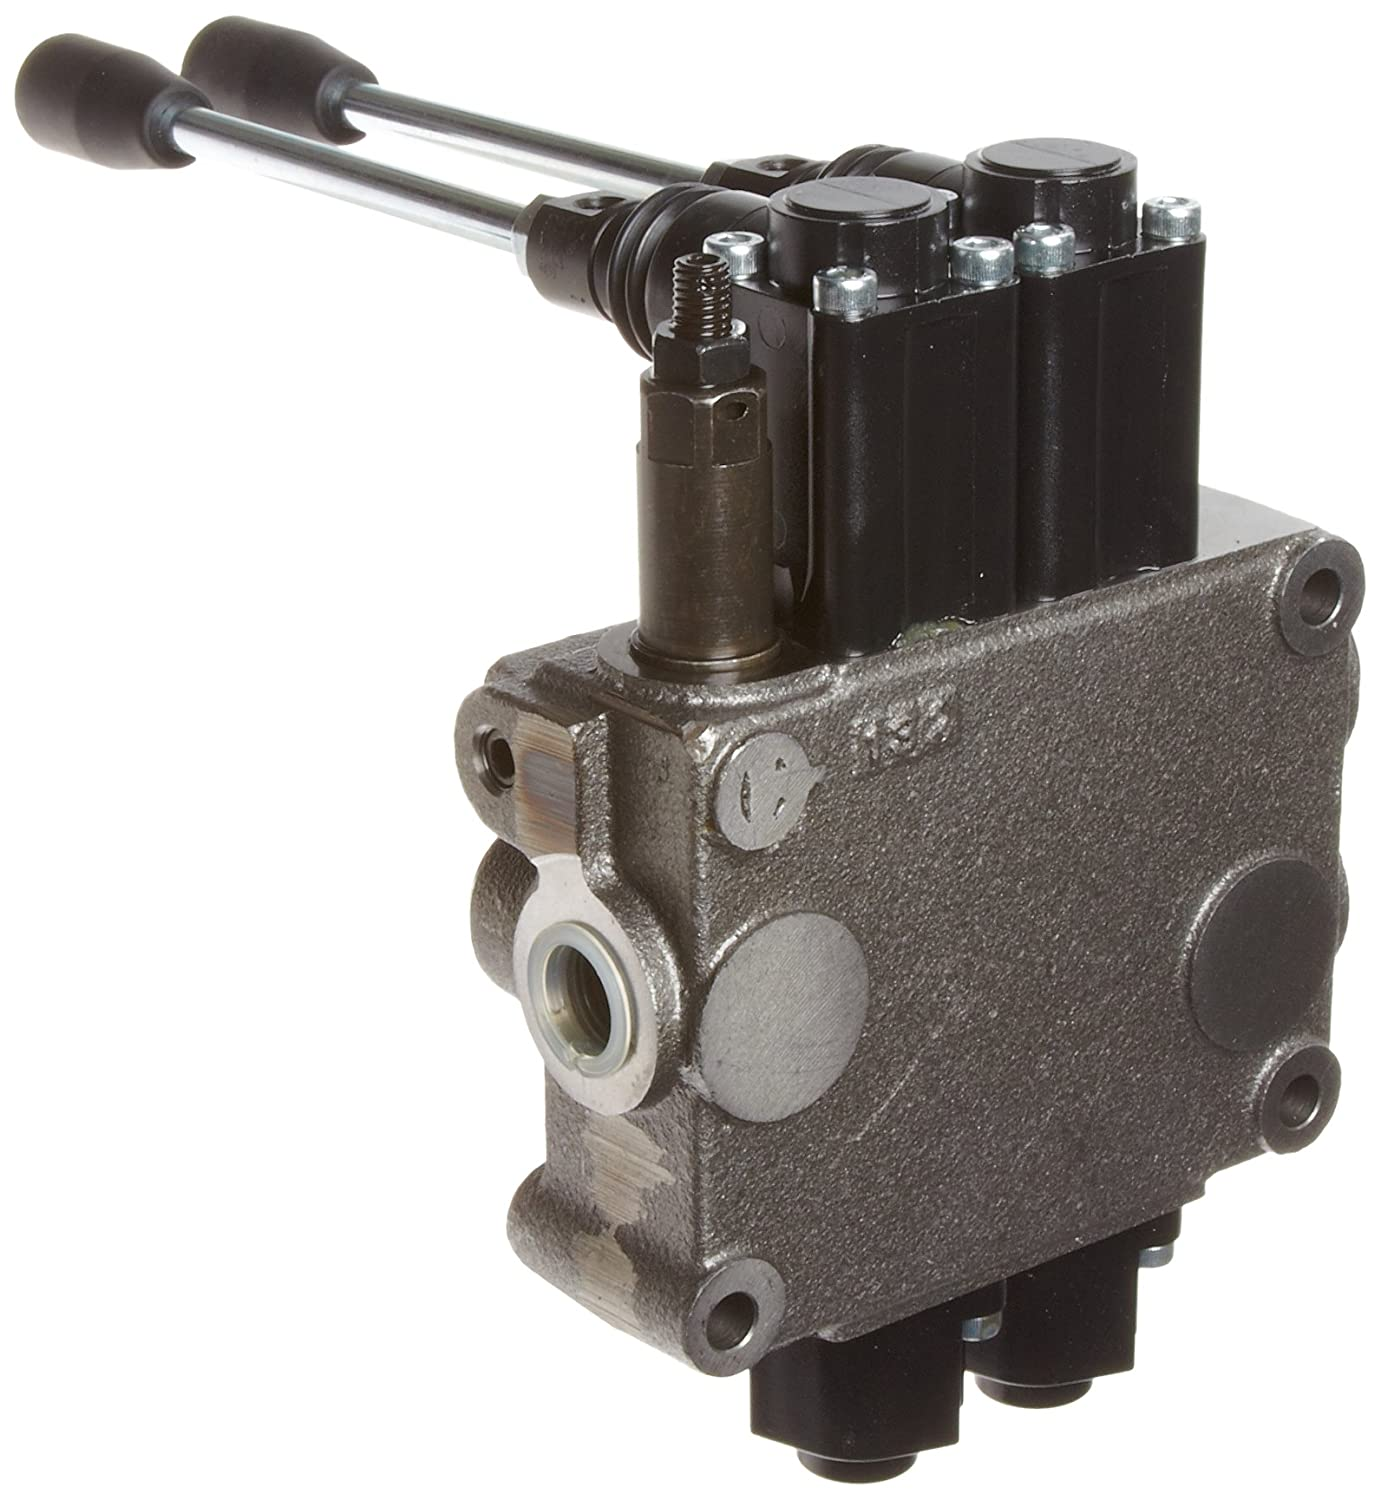 Prince-Hydraulic_directional_control_&_detent_Log_Splitter_valve